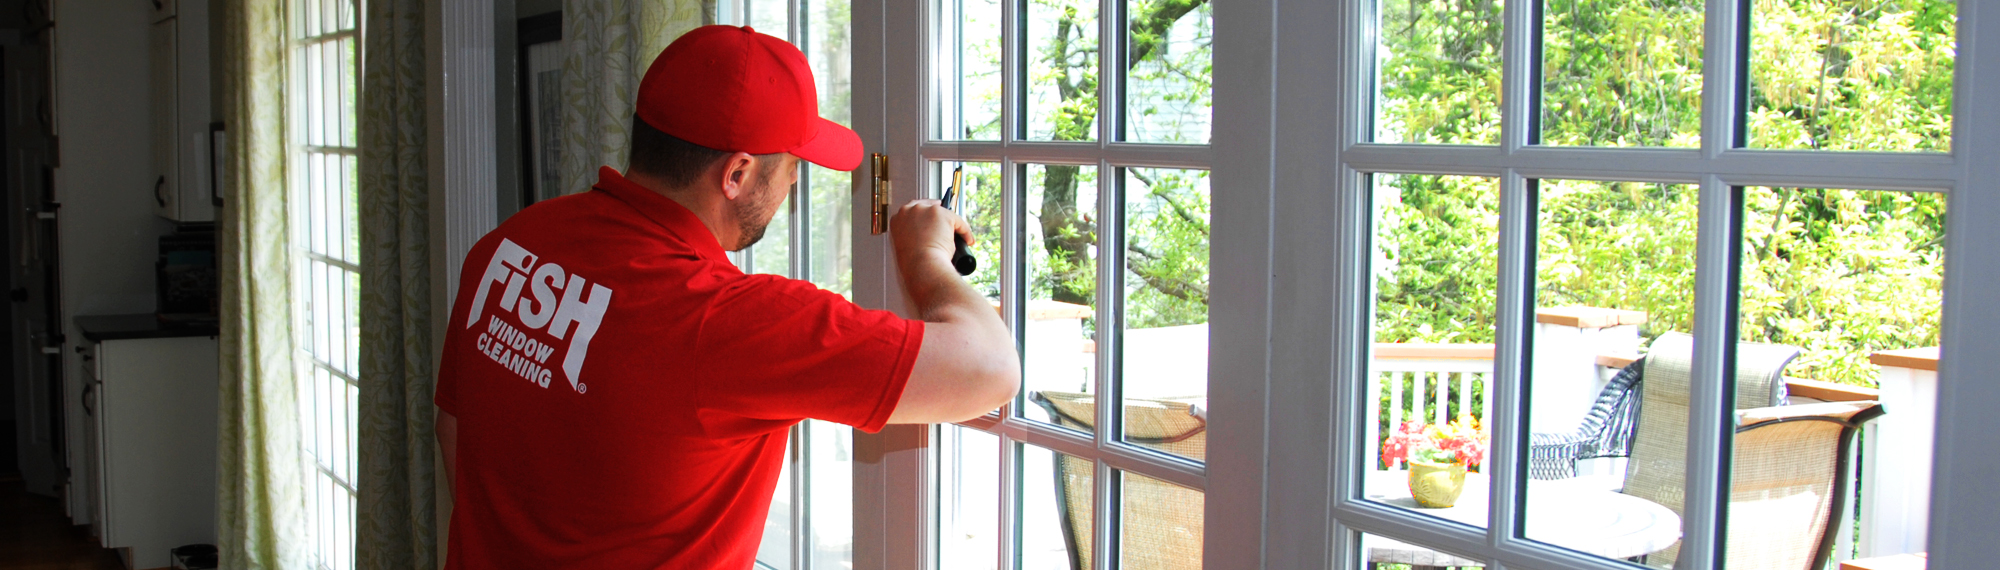 Fish window cleaning naperville oswego aurora for Fish window cleaning